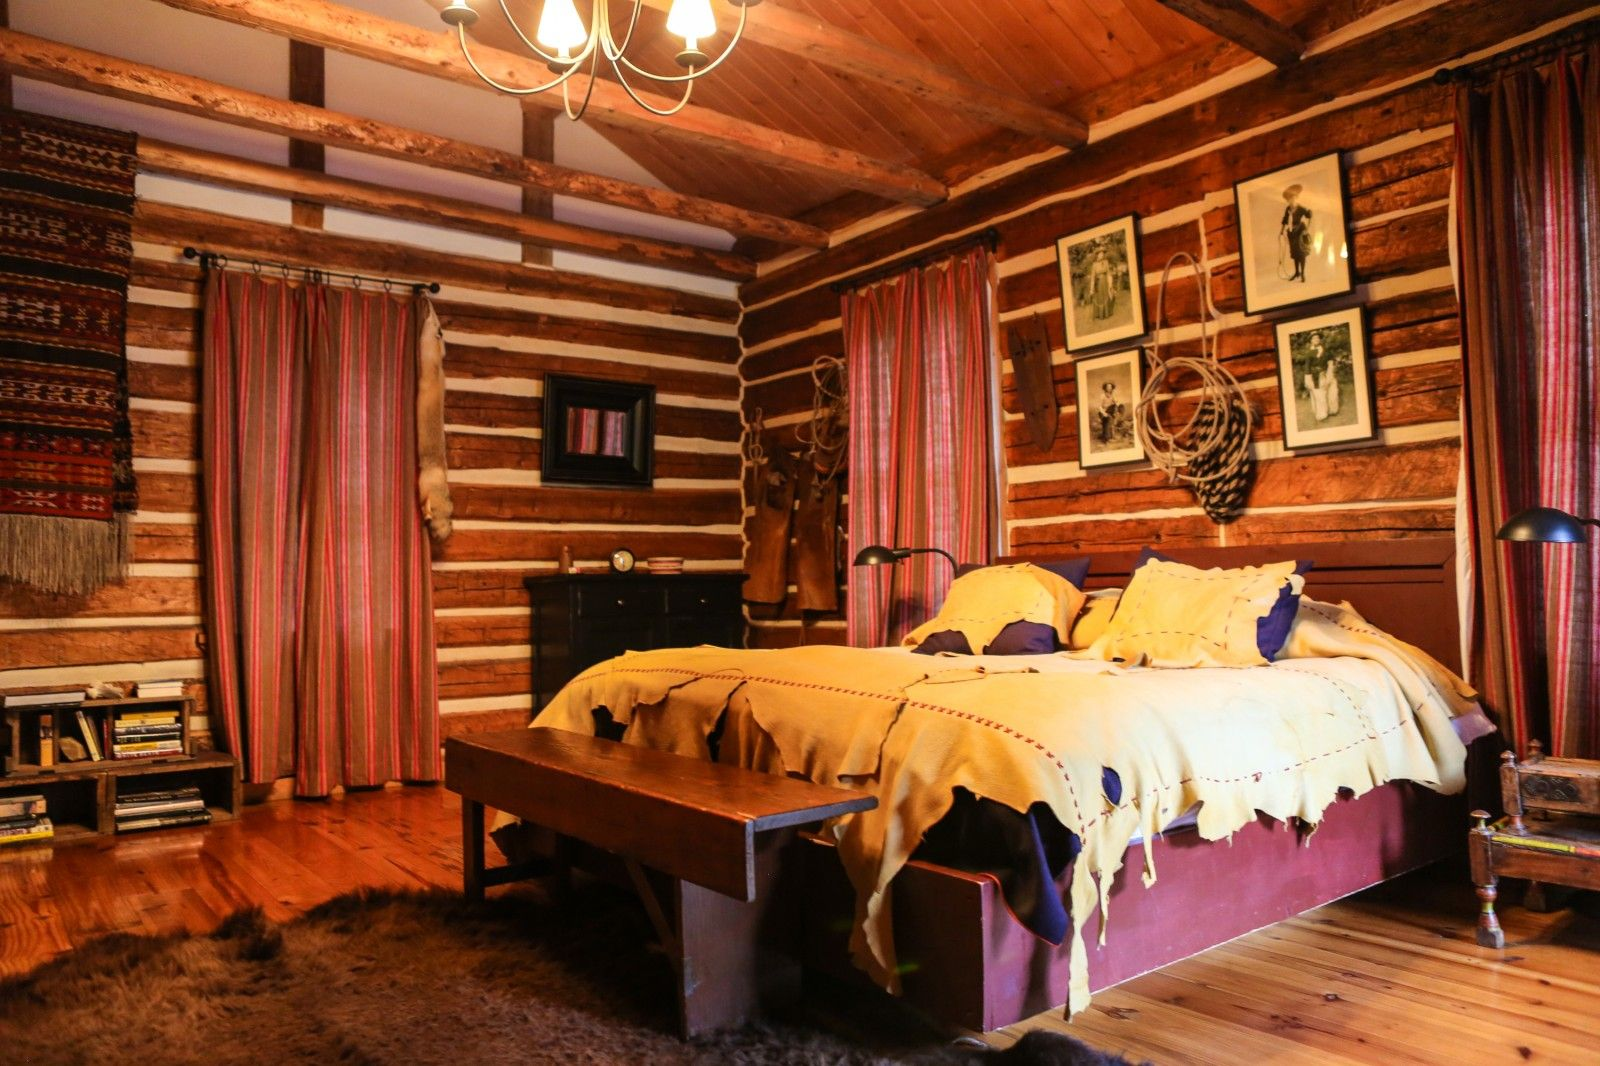 Decor Rustic Cabin In A Room With Traditional Feel Furniture Complete Including Bookshelf And